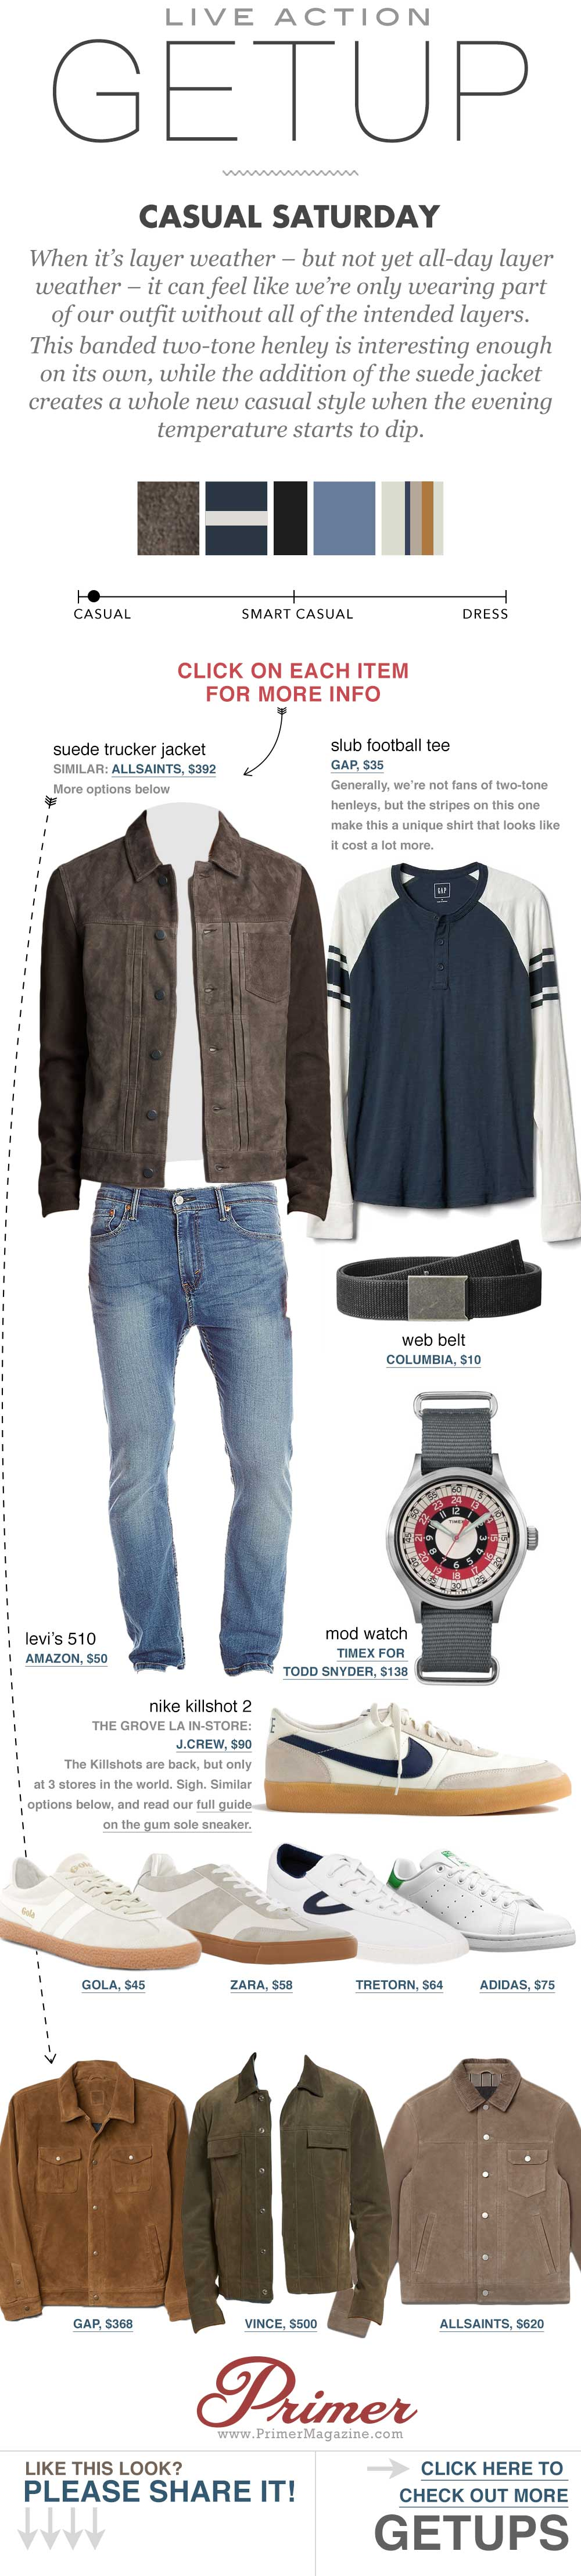 casual men outfit inspiration fashion The Getup